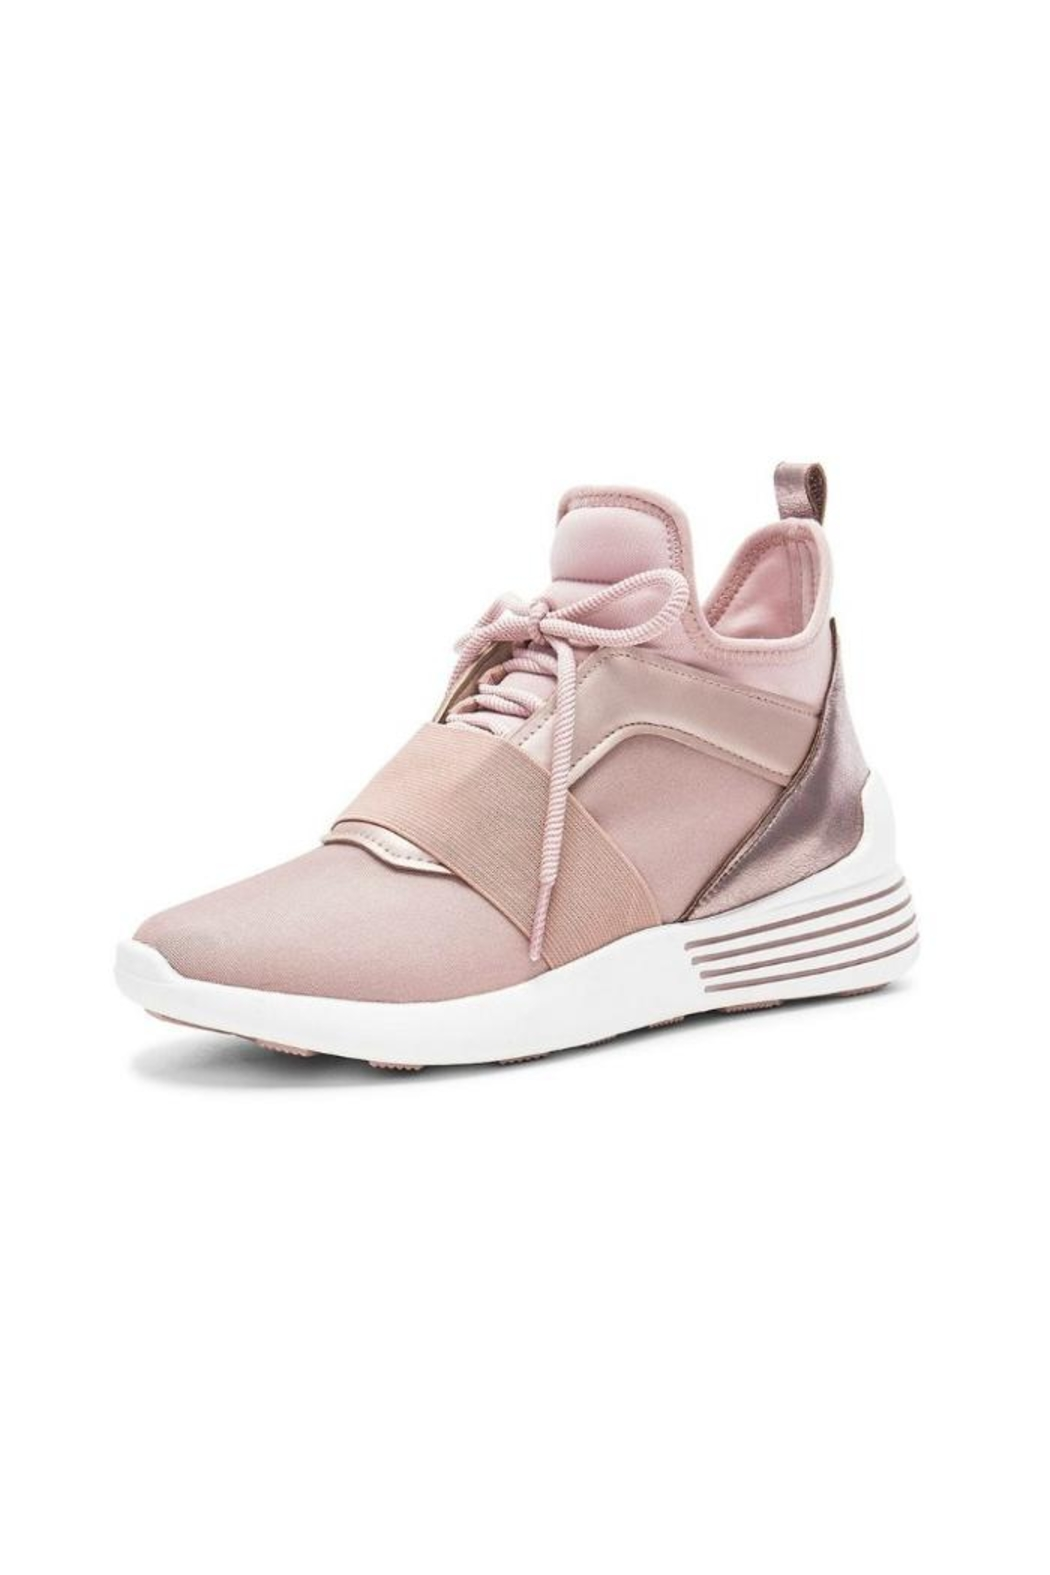 Kendall + Kylie The Braydin Sneaker - Main Image